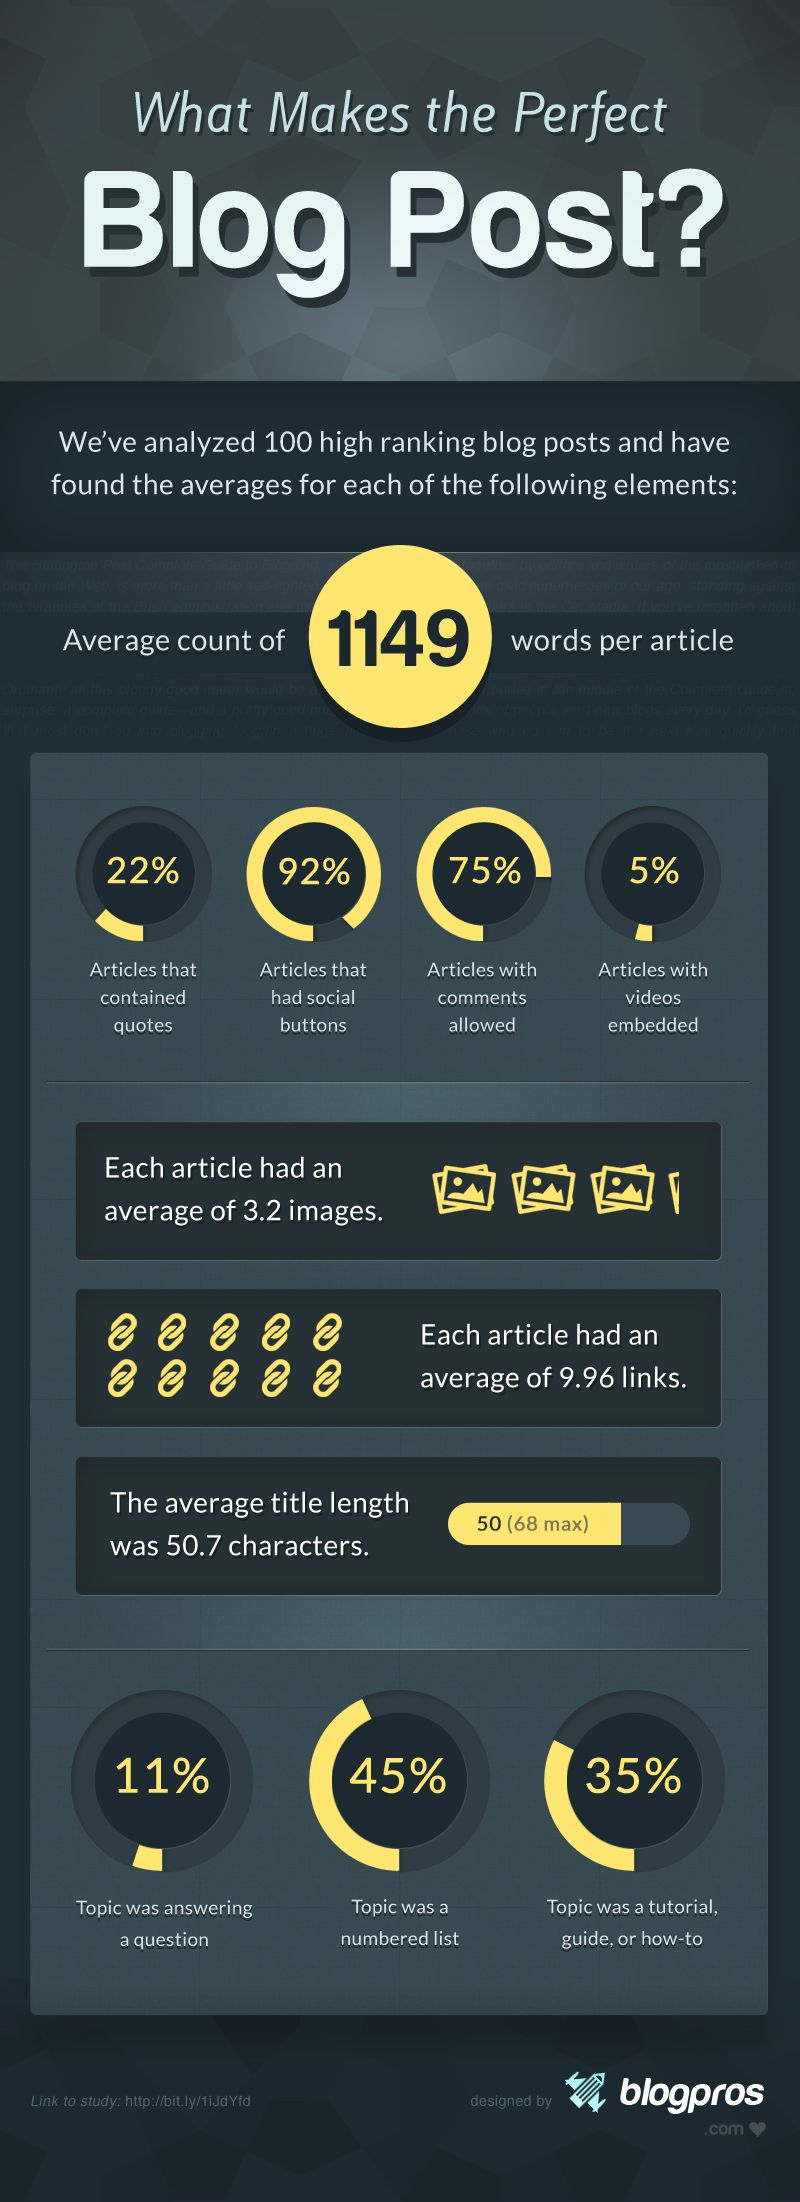 The Research and Science Behind a Perfect Blog Post #blogger #tips   #Infographic repinned by @Piktochart   Create yours at www.piktochart.com